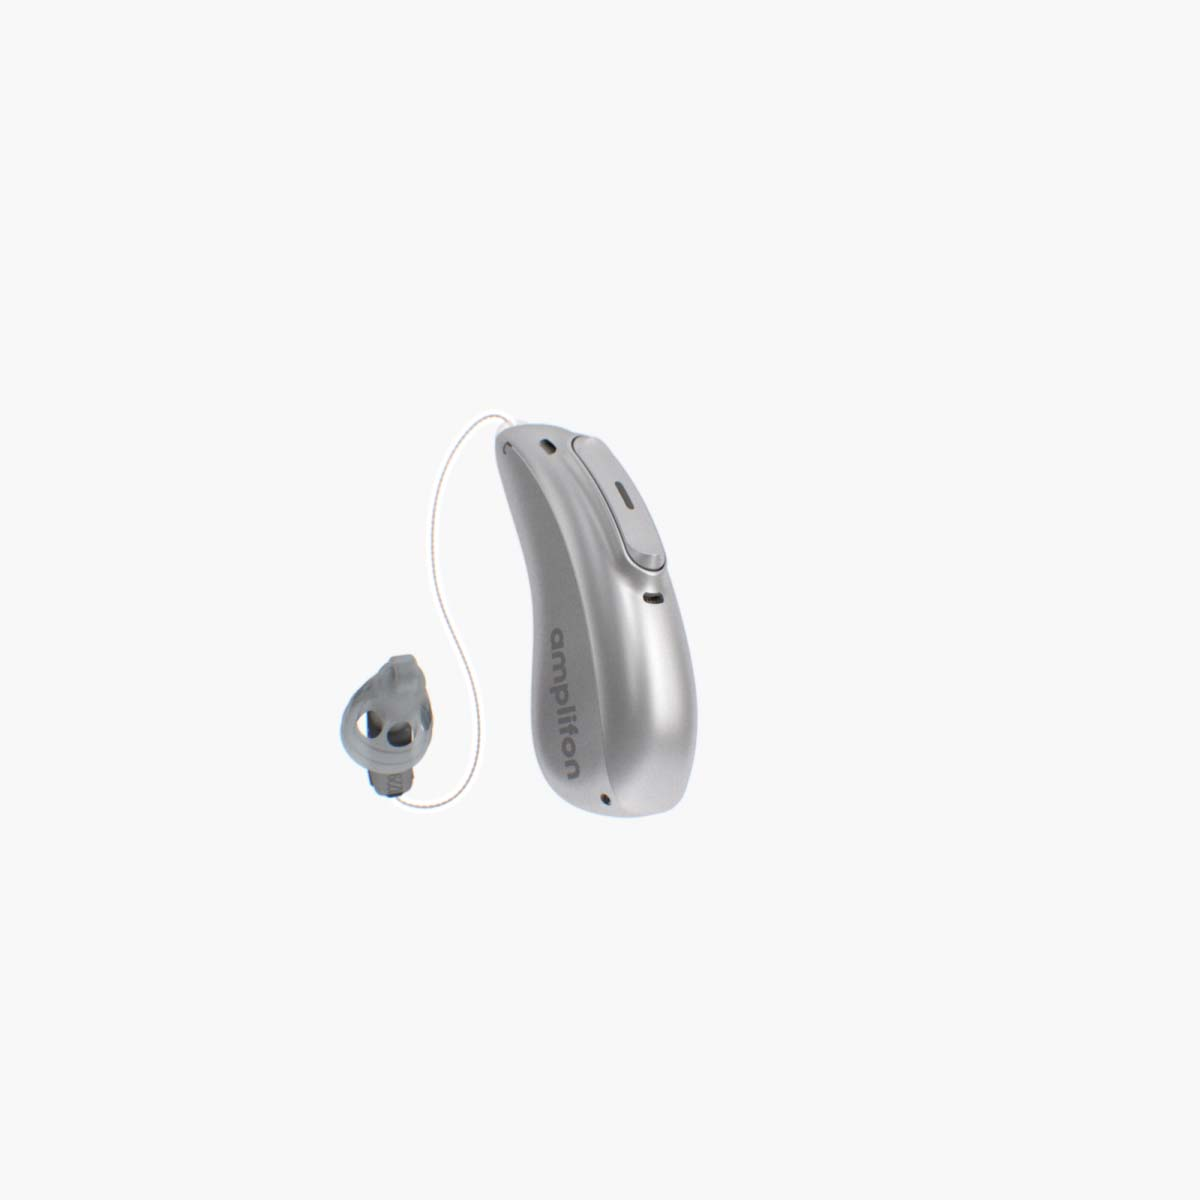 ampli-energy R 5 - Rechargeable Hearing Aid